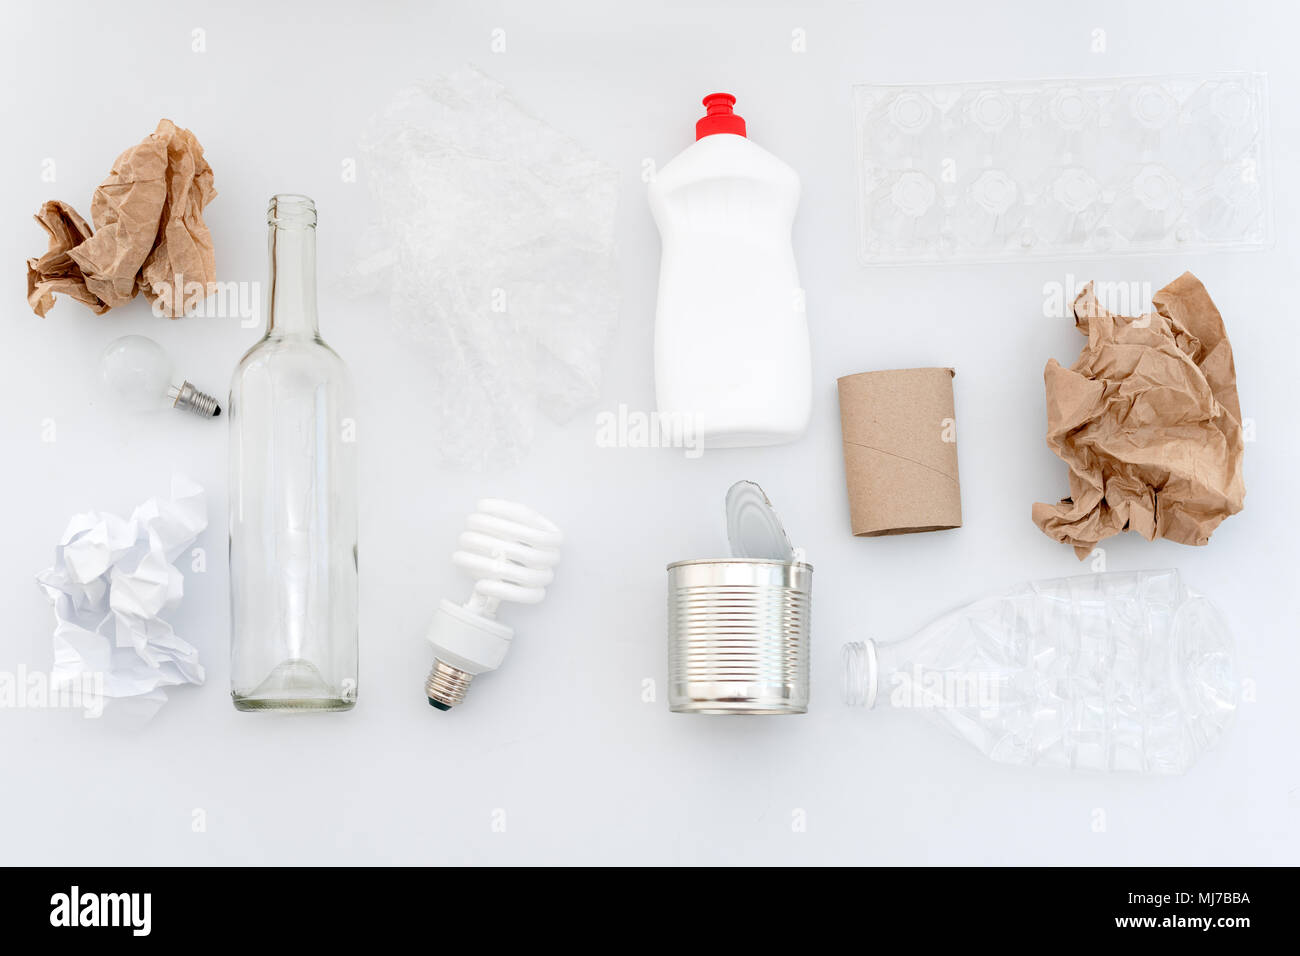 Recyclable waste, resources. Clean glass, paper, plastic and metal on white background. Recycling, reuse, garbage disposal, resources, environment and ecology concept - Stock Image